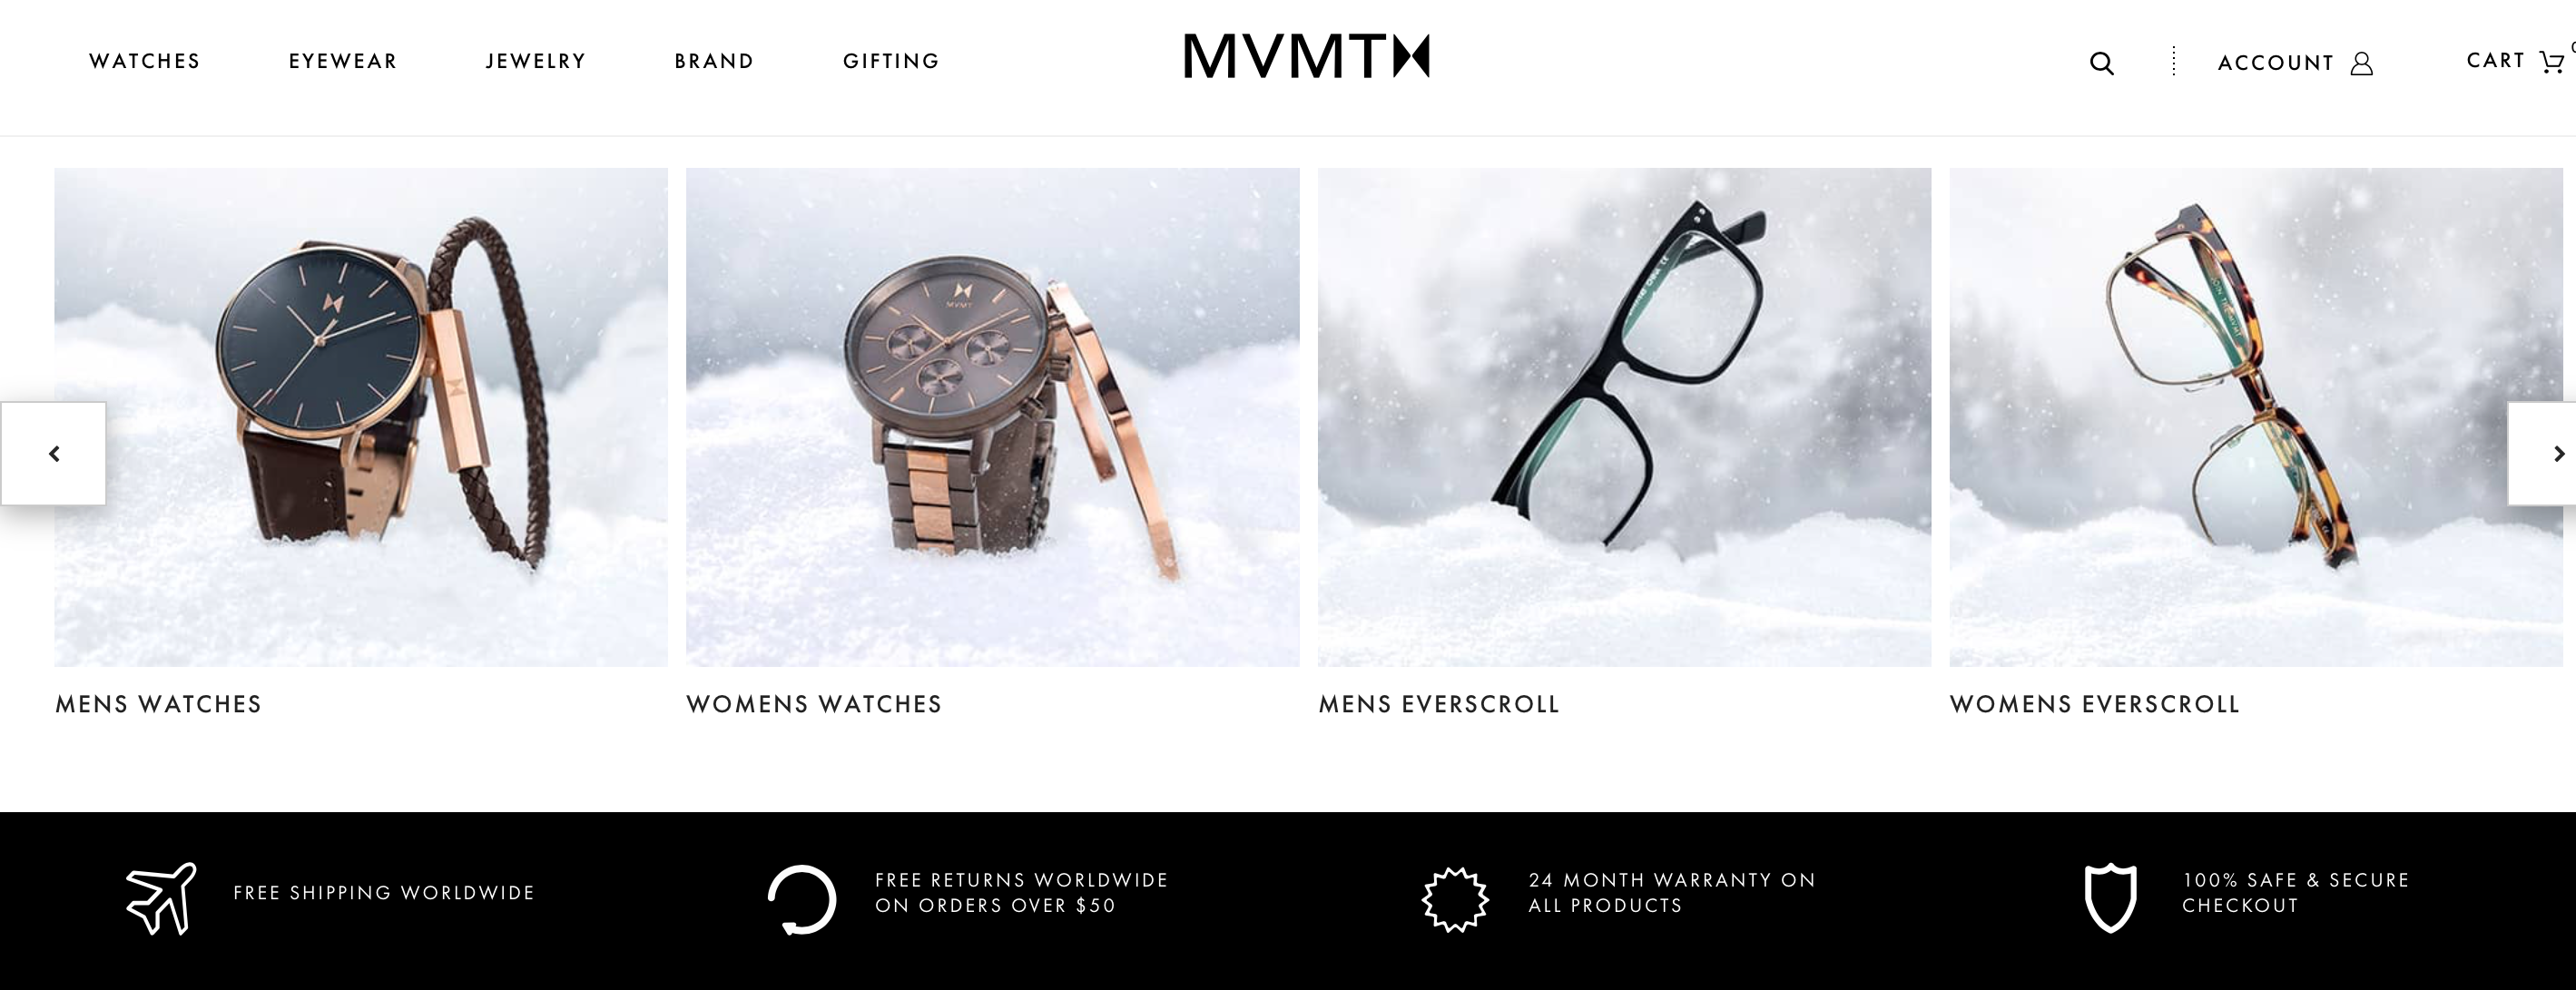 MVMT offers free shipping on returns to its customers